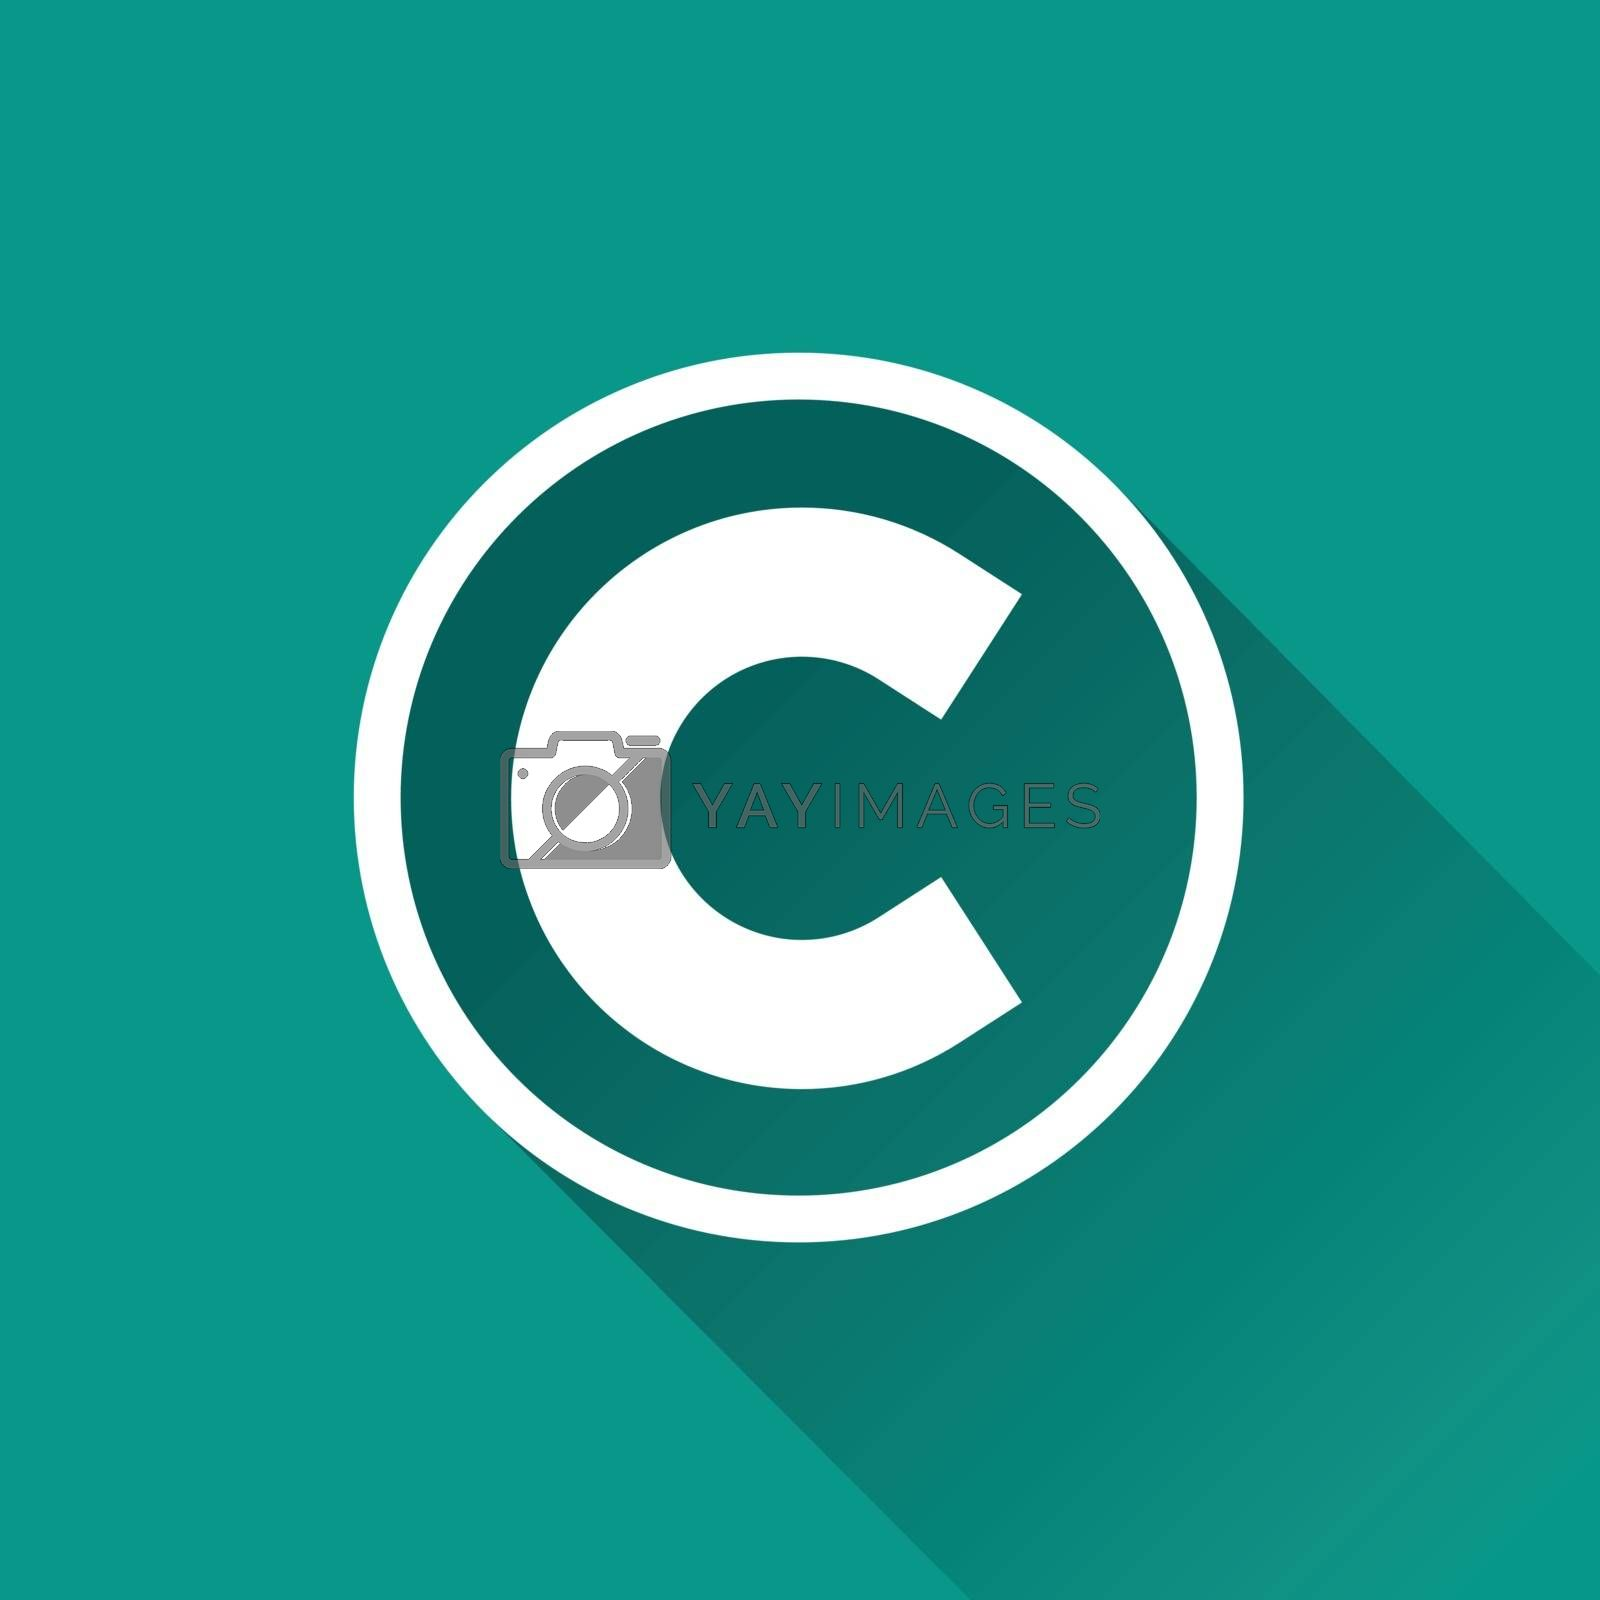 Royalty free image of copyright flat design icon by nickylarson974